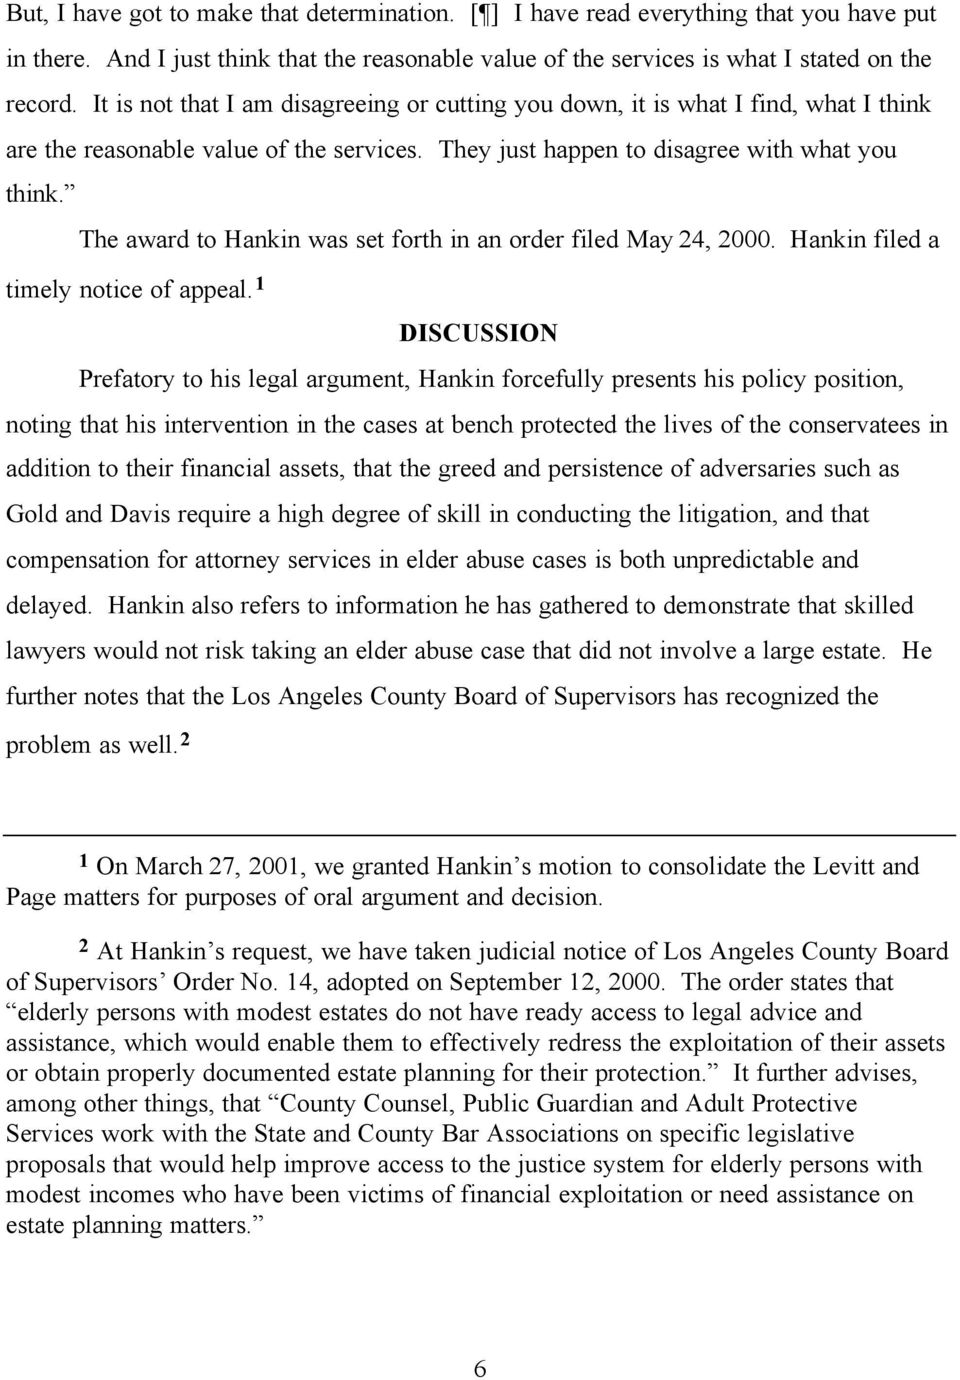 The award to Hankin was set forth in an order filed May 24, 2000. Hankin filed a timely notice of appeal.